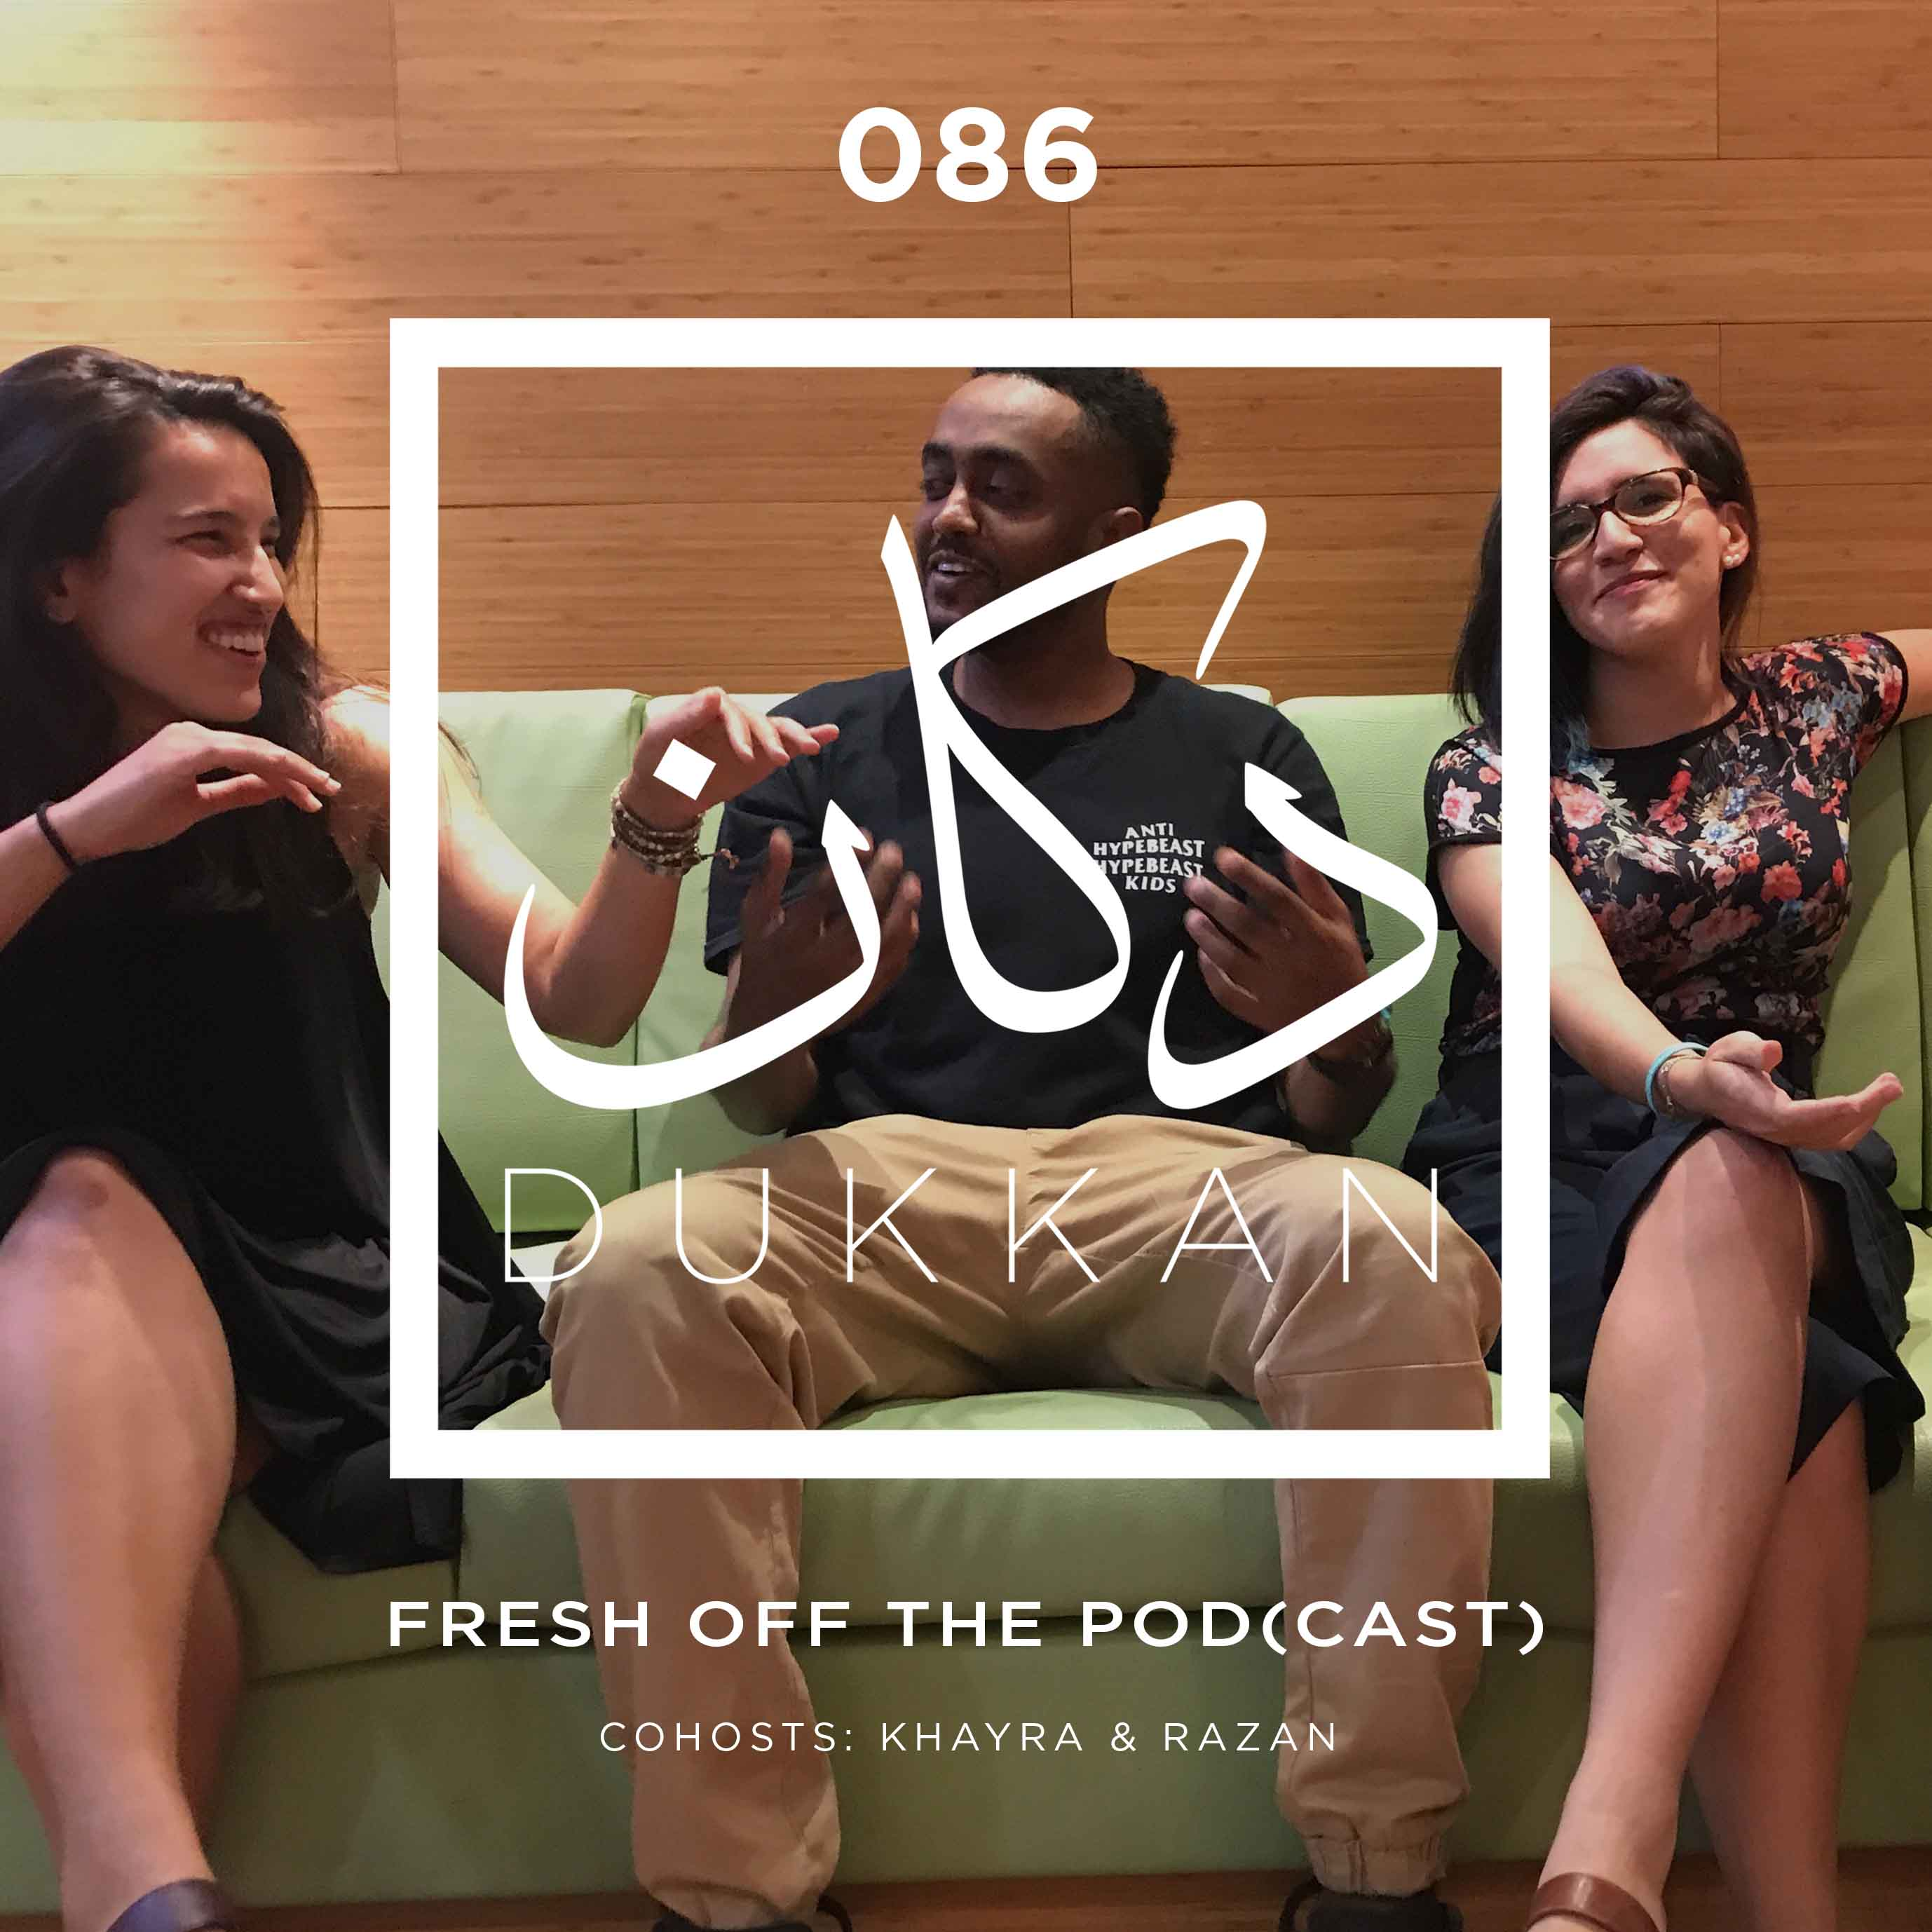 E086: Fresh Off The Pod(cast) - Cohosts: Khayra & Razan